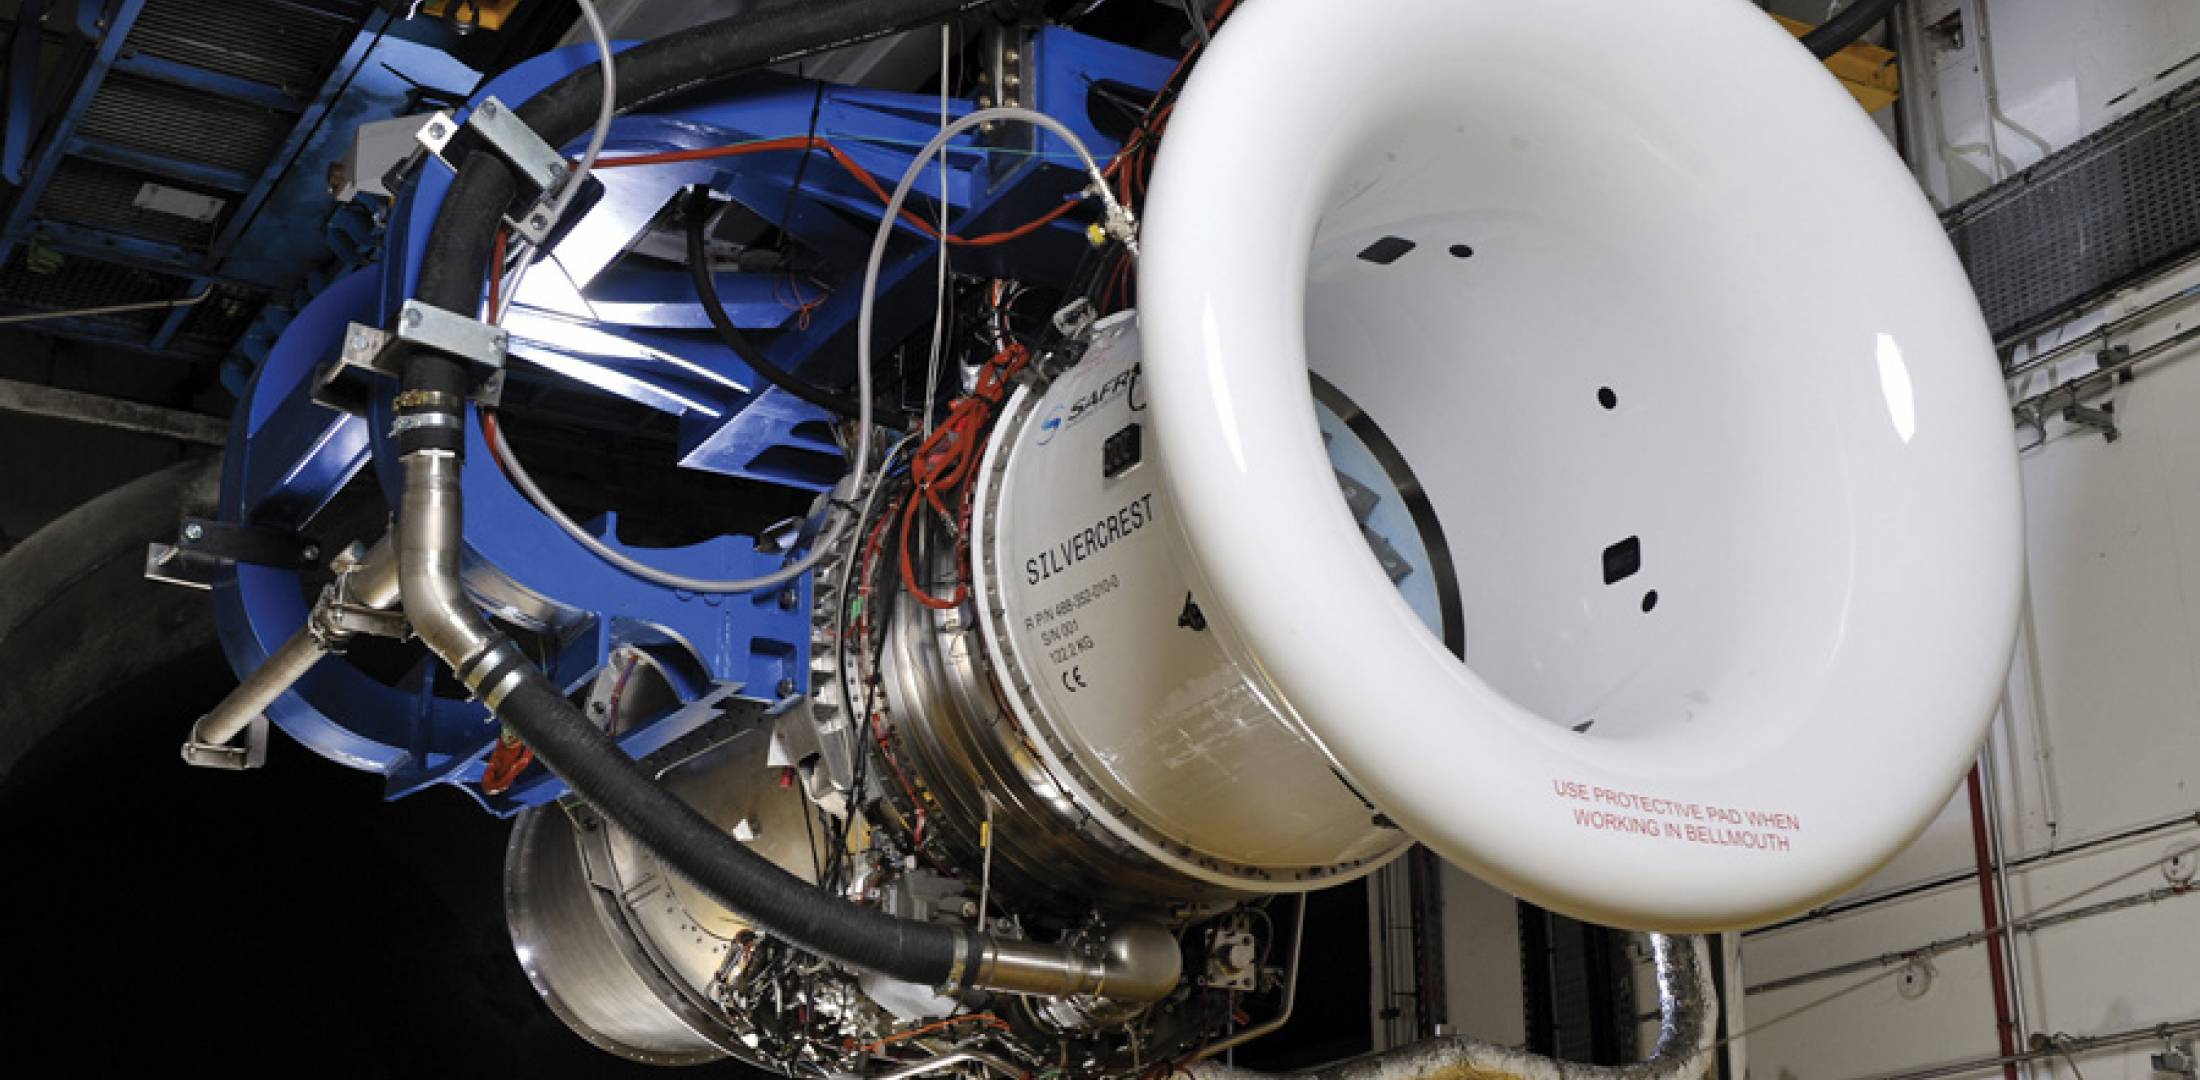 The Silvercrest turbofan, which is to power the Cessna Longitude, was run for the first time on Snecma's testbed in Villaroche, near Paris in September.